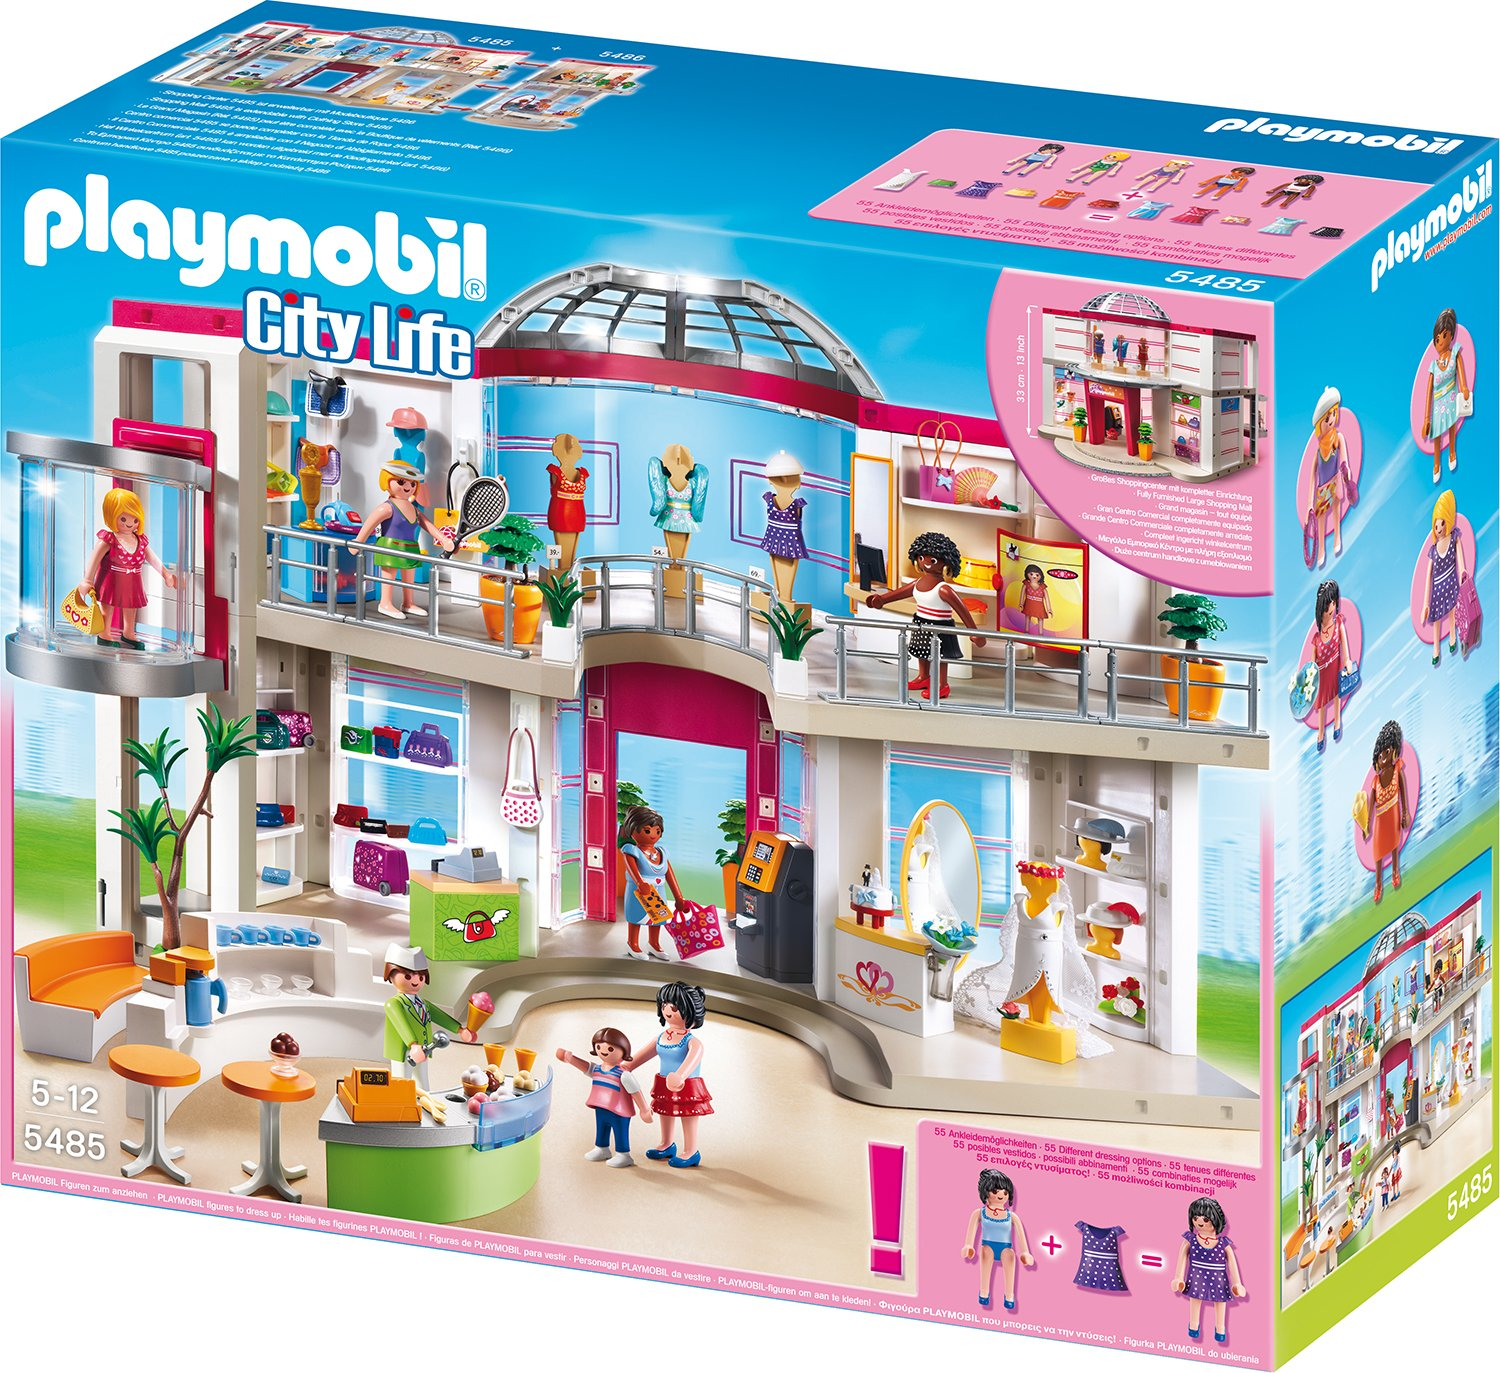 Playmobil City Life Küche 9269 Playmobil Shopping Center 5485 Preisvergleich And Test